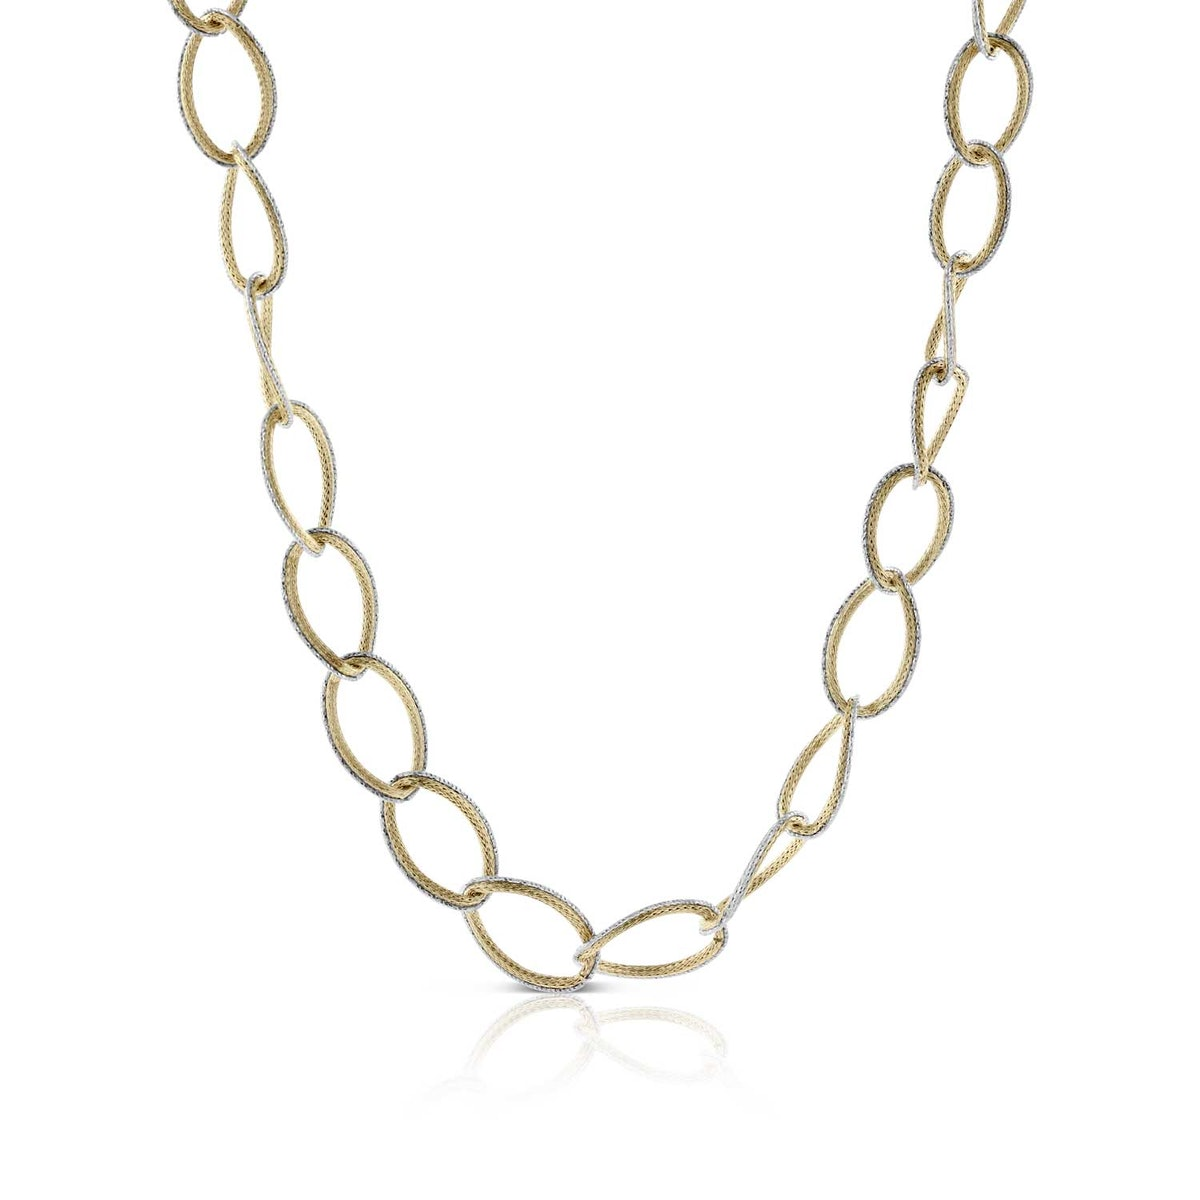 Toscano Italian Gold Collection Two-Tone Graduated Oval Link Necklace in 14K White & Yellow Gold